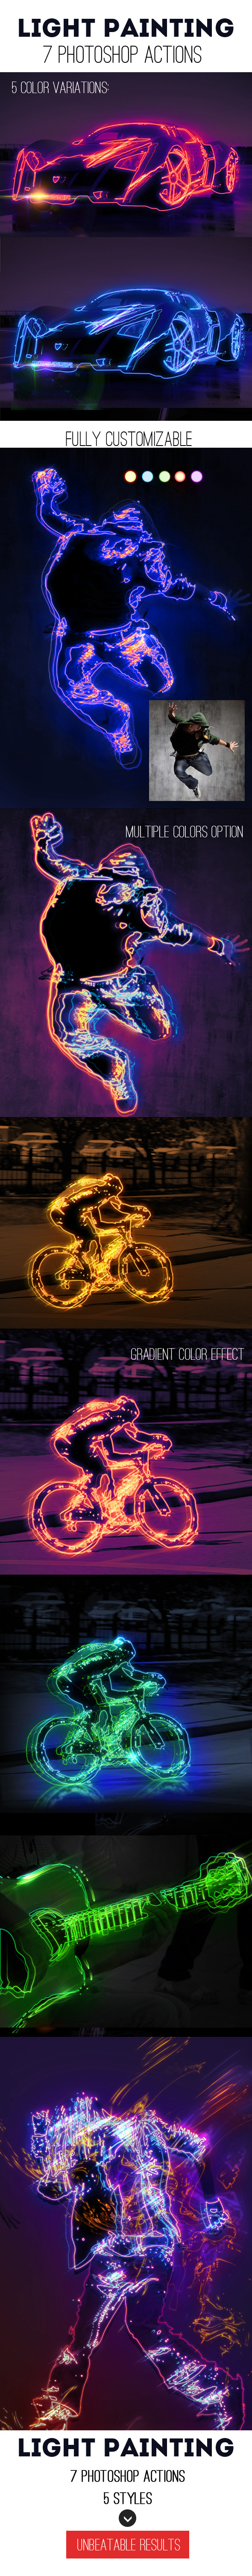 Light Painting Effect Photoshop Creator - Photo Effects Actions